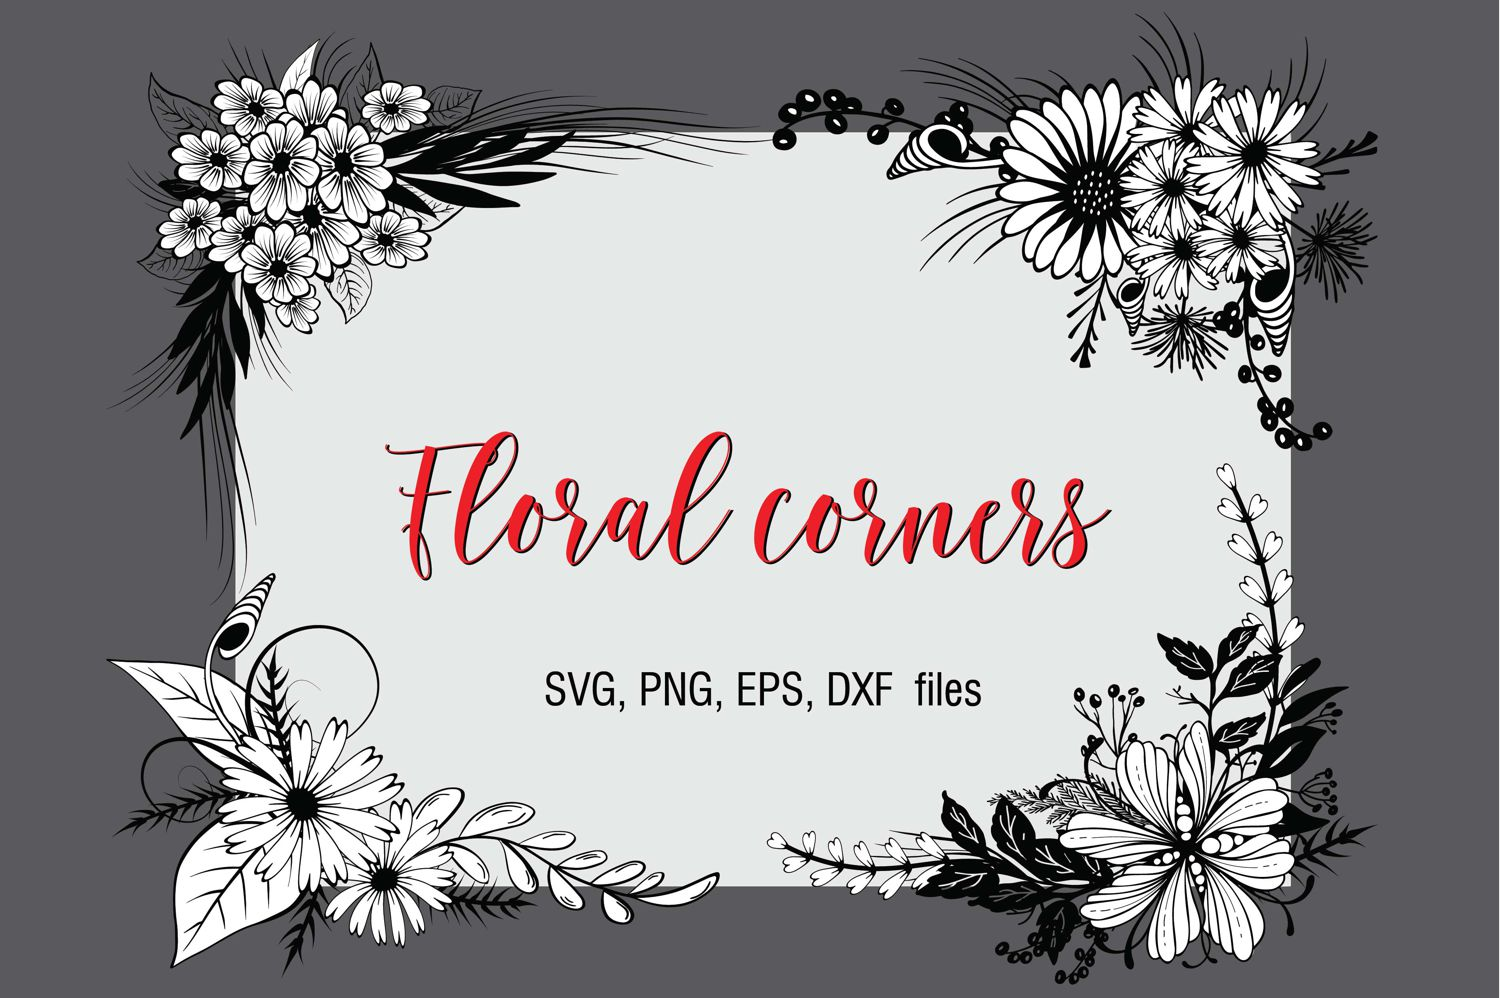 Download Free Floral Corners Graphic By Eva Barabasne Olasz Creative Fabrica for Cricut Explore, Silhouette and other cutting machines.